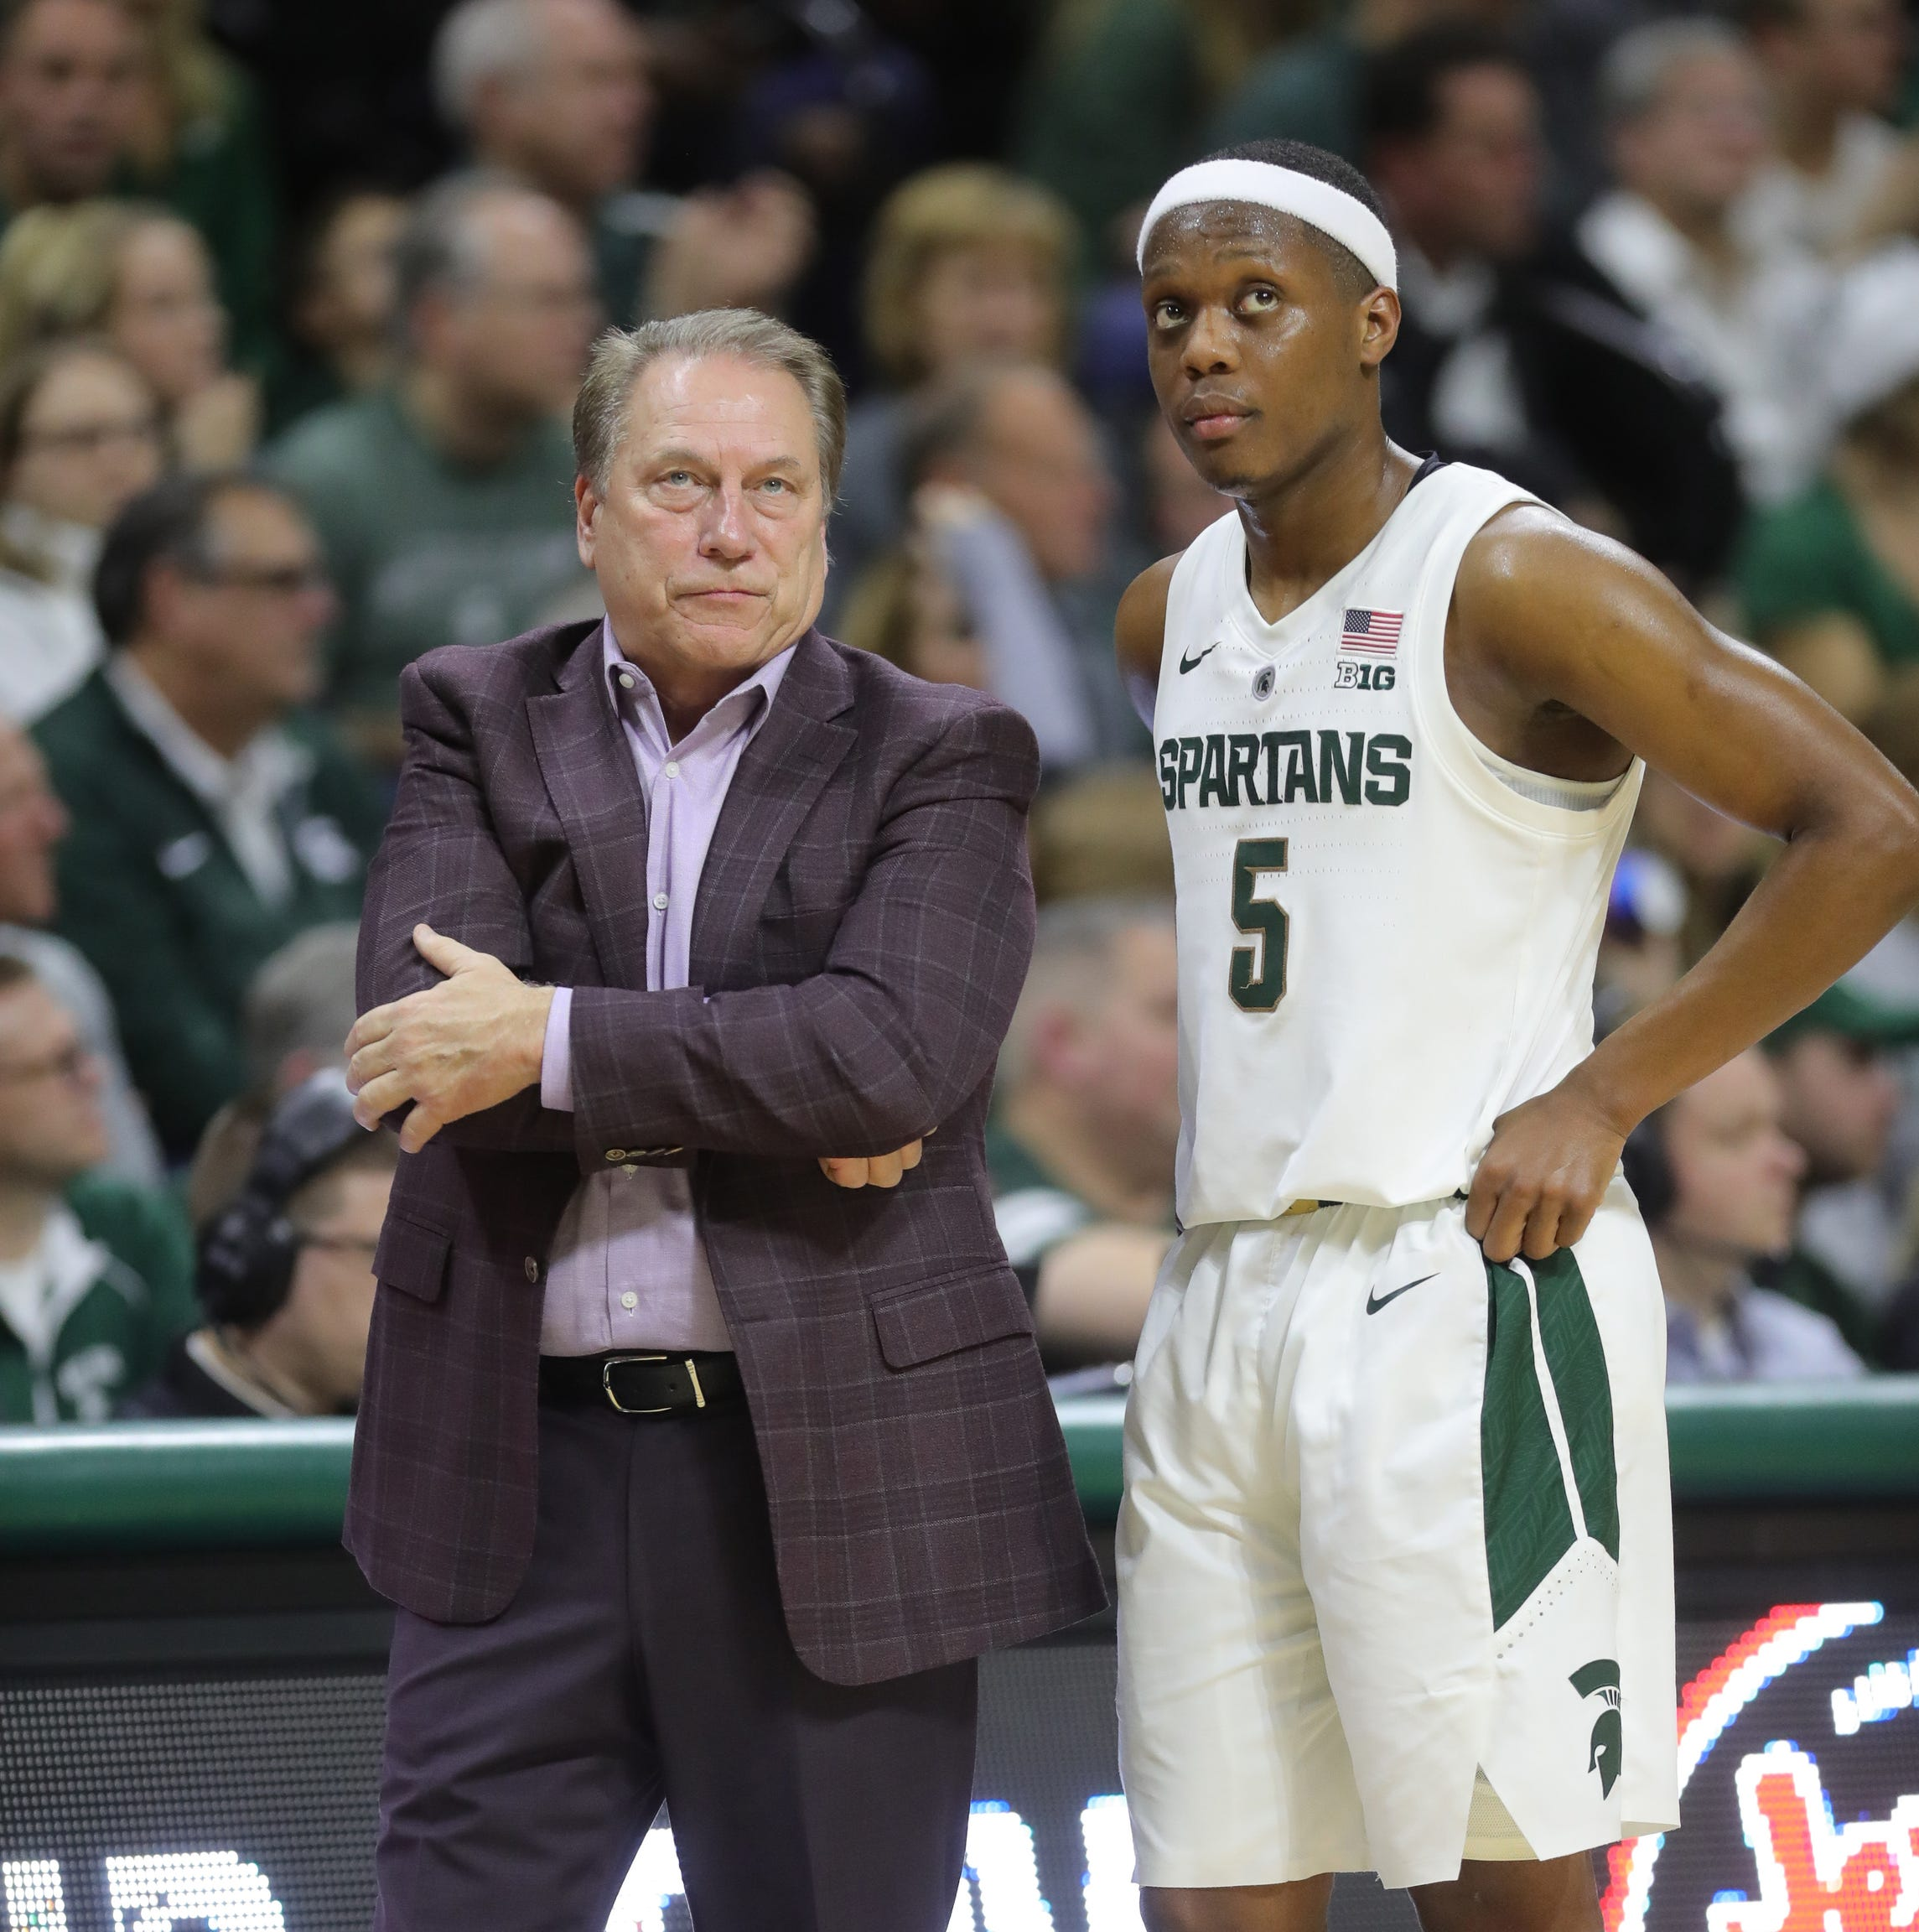 Michigan State vs. Texas Tech in Final Four: Predictions, who has the edge